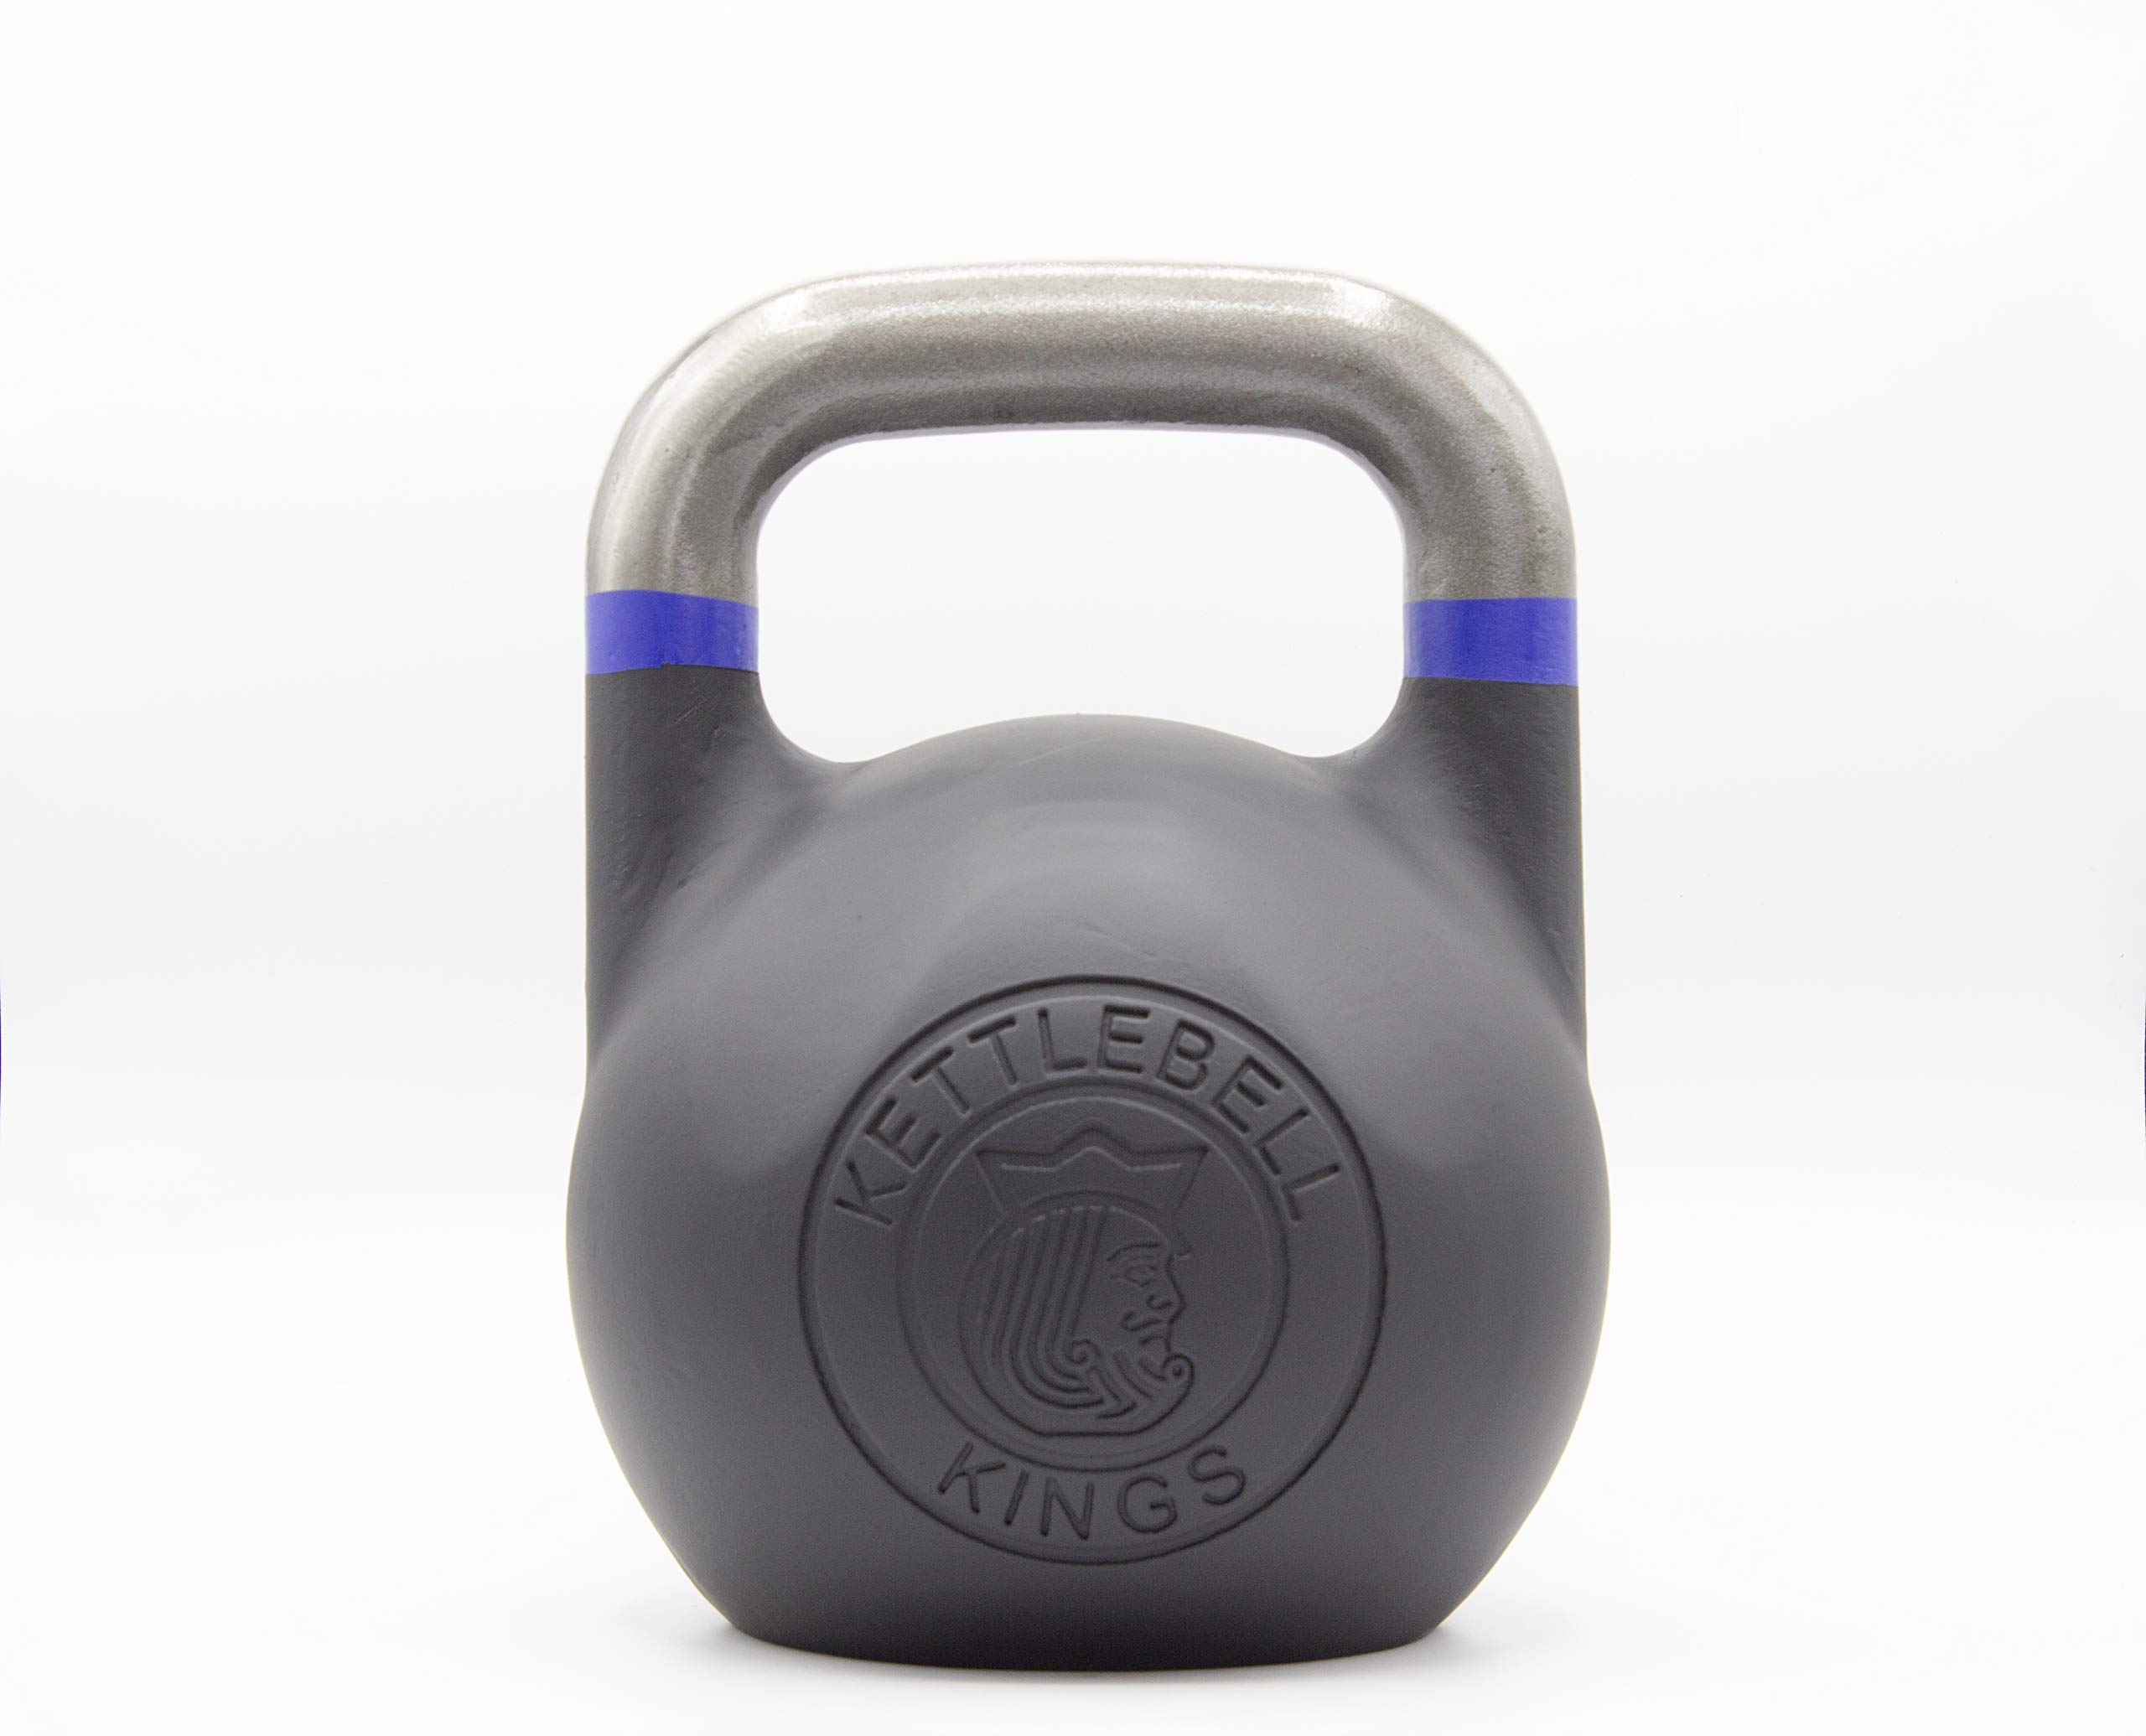 Kettlebell Kings | Kettlebell Weights | Competition Kettlebell Weight Sets for Women & Men | Built in American Style | Same Size & Dimension Across All Weights (25)